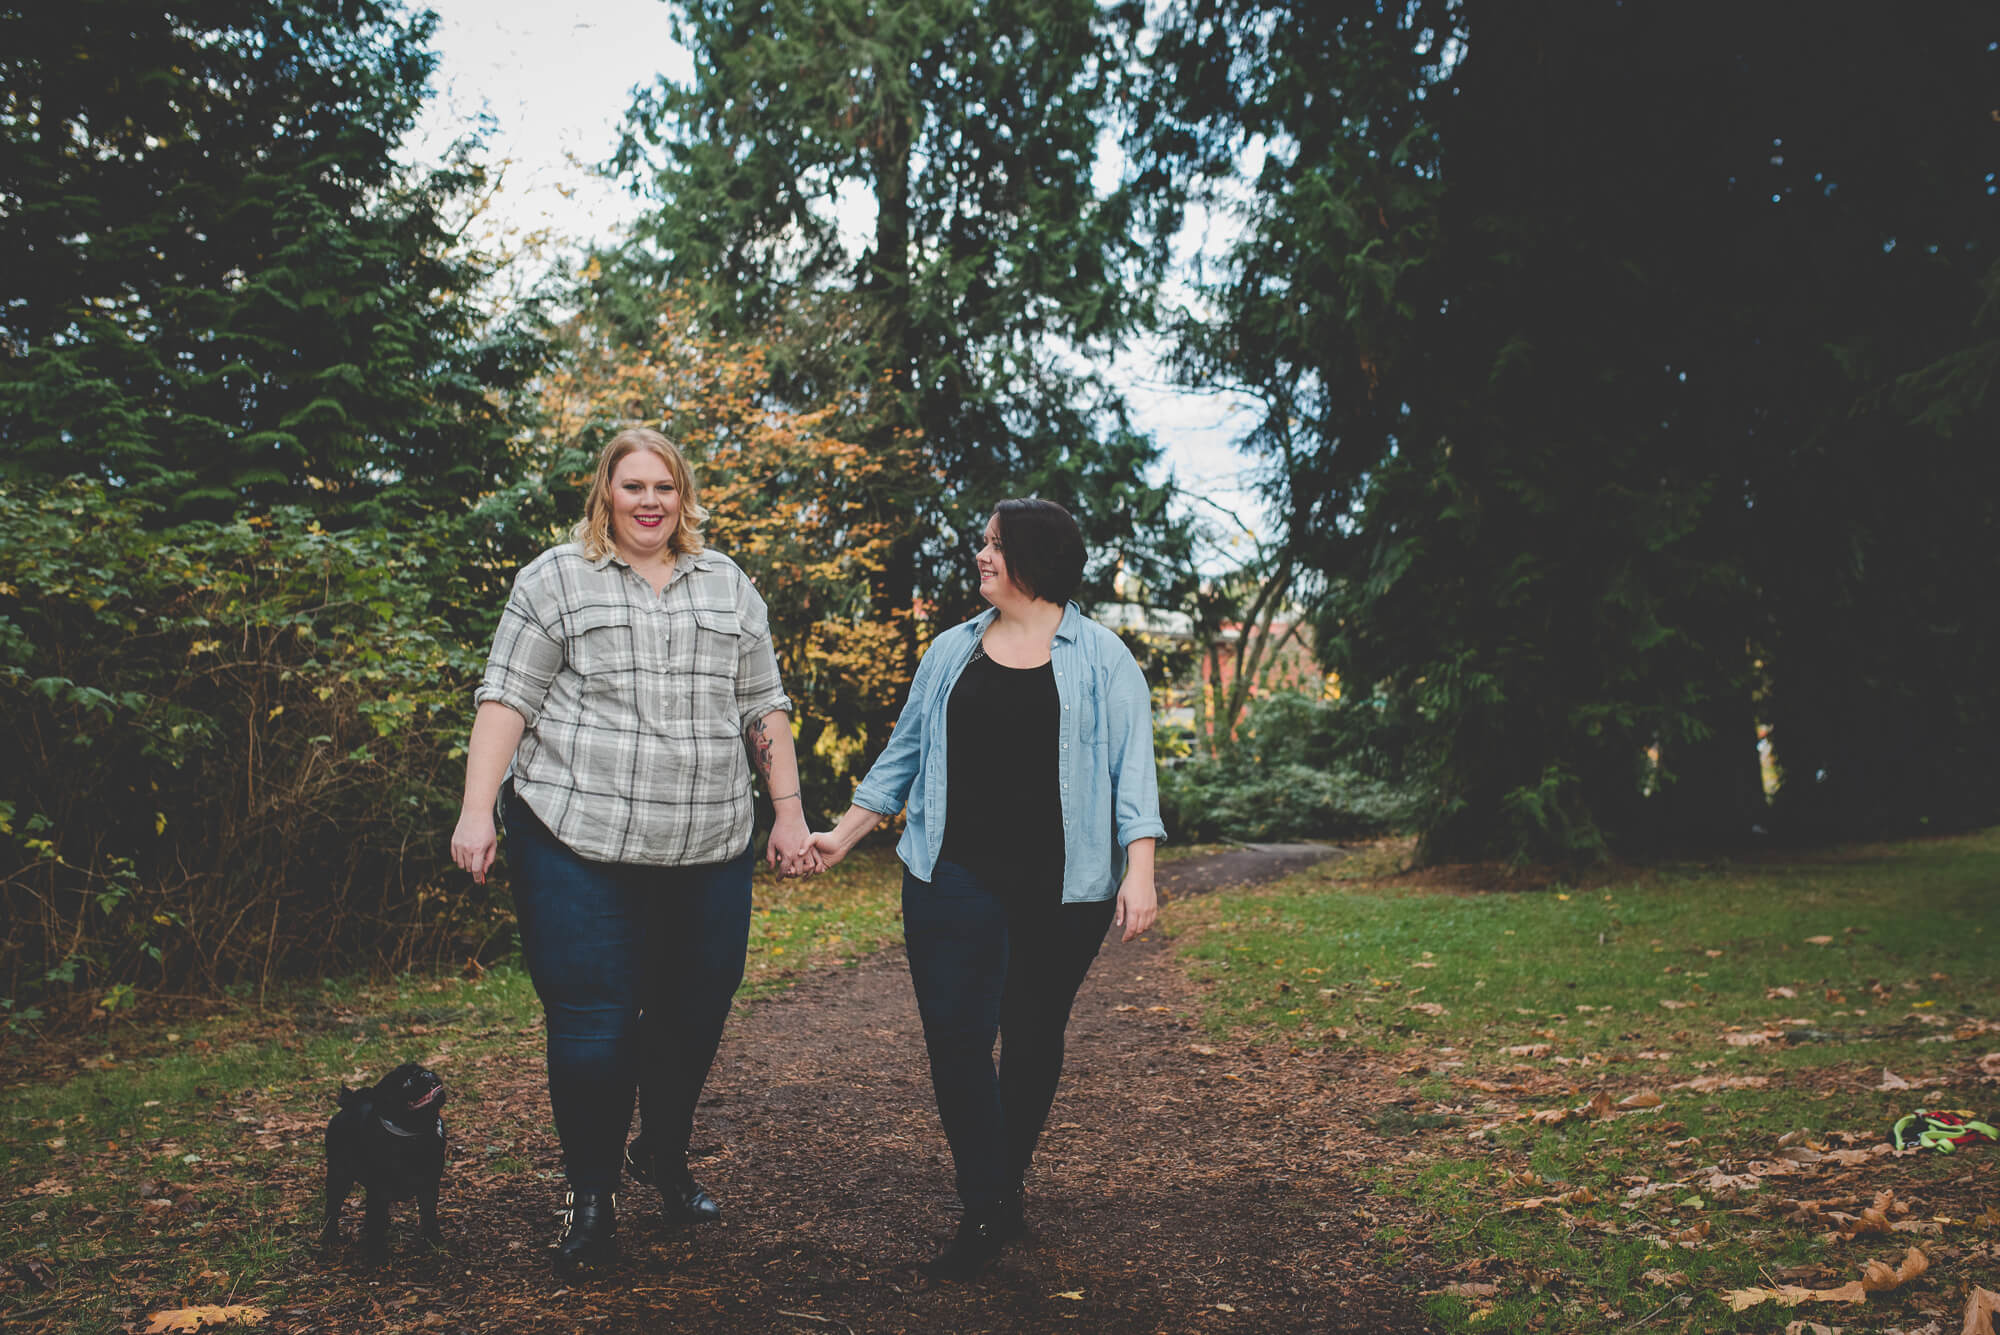 lesbian couple walk together with their black pug in the forest | QE Park autumn engagement | Vancouver lesbian wedding photographer